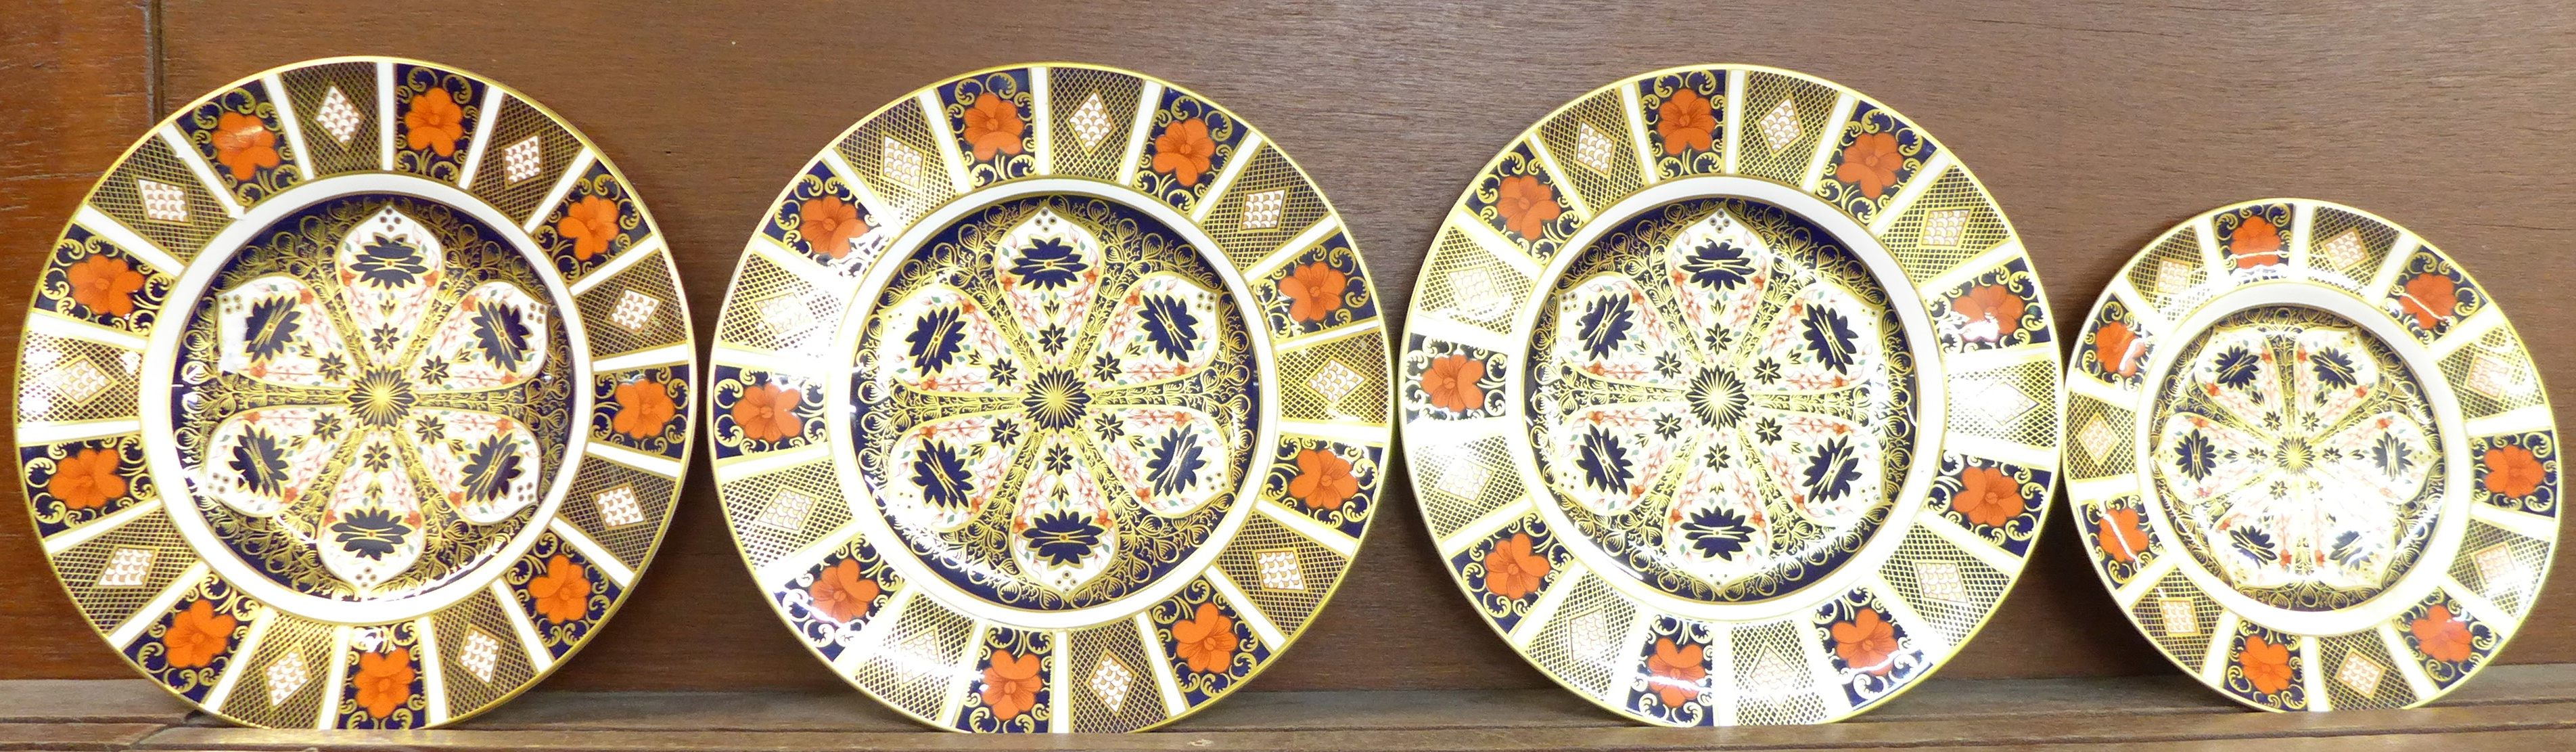 Lot 602 - Four Royal Crown Derby 1128 pattern plates, three plates 27cm in diameter, smaller plate 21.